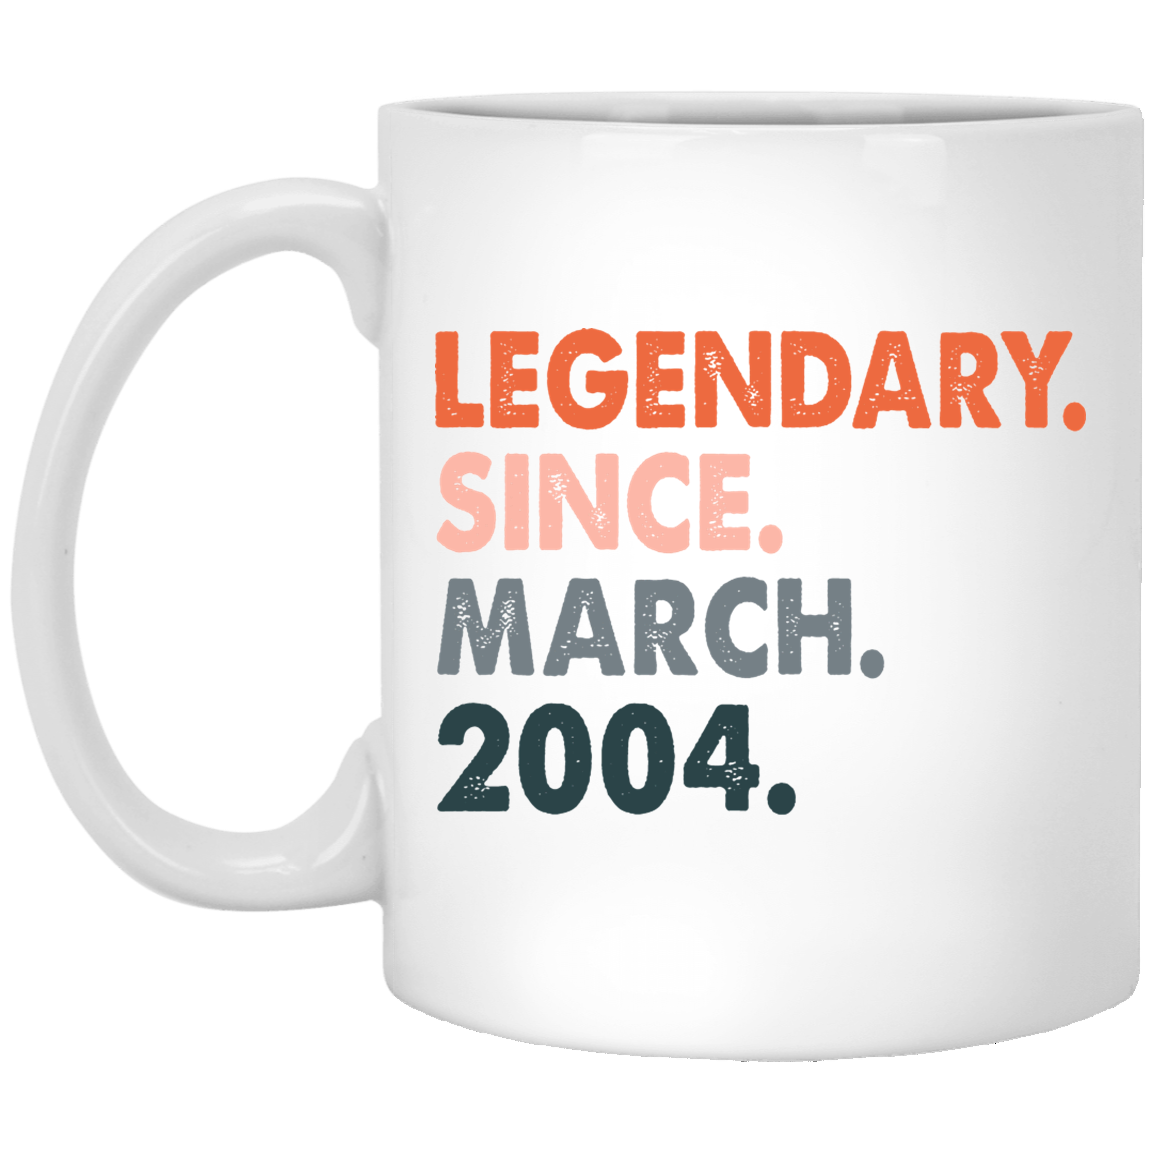 17th-Birthday-Ideas-for-Women-and-Men-Legendary-Since-March-2004 Funny Quotes Coffee Mug 99promocode